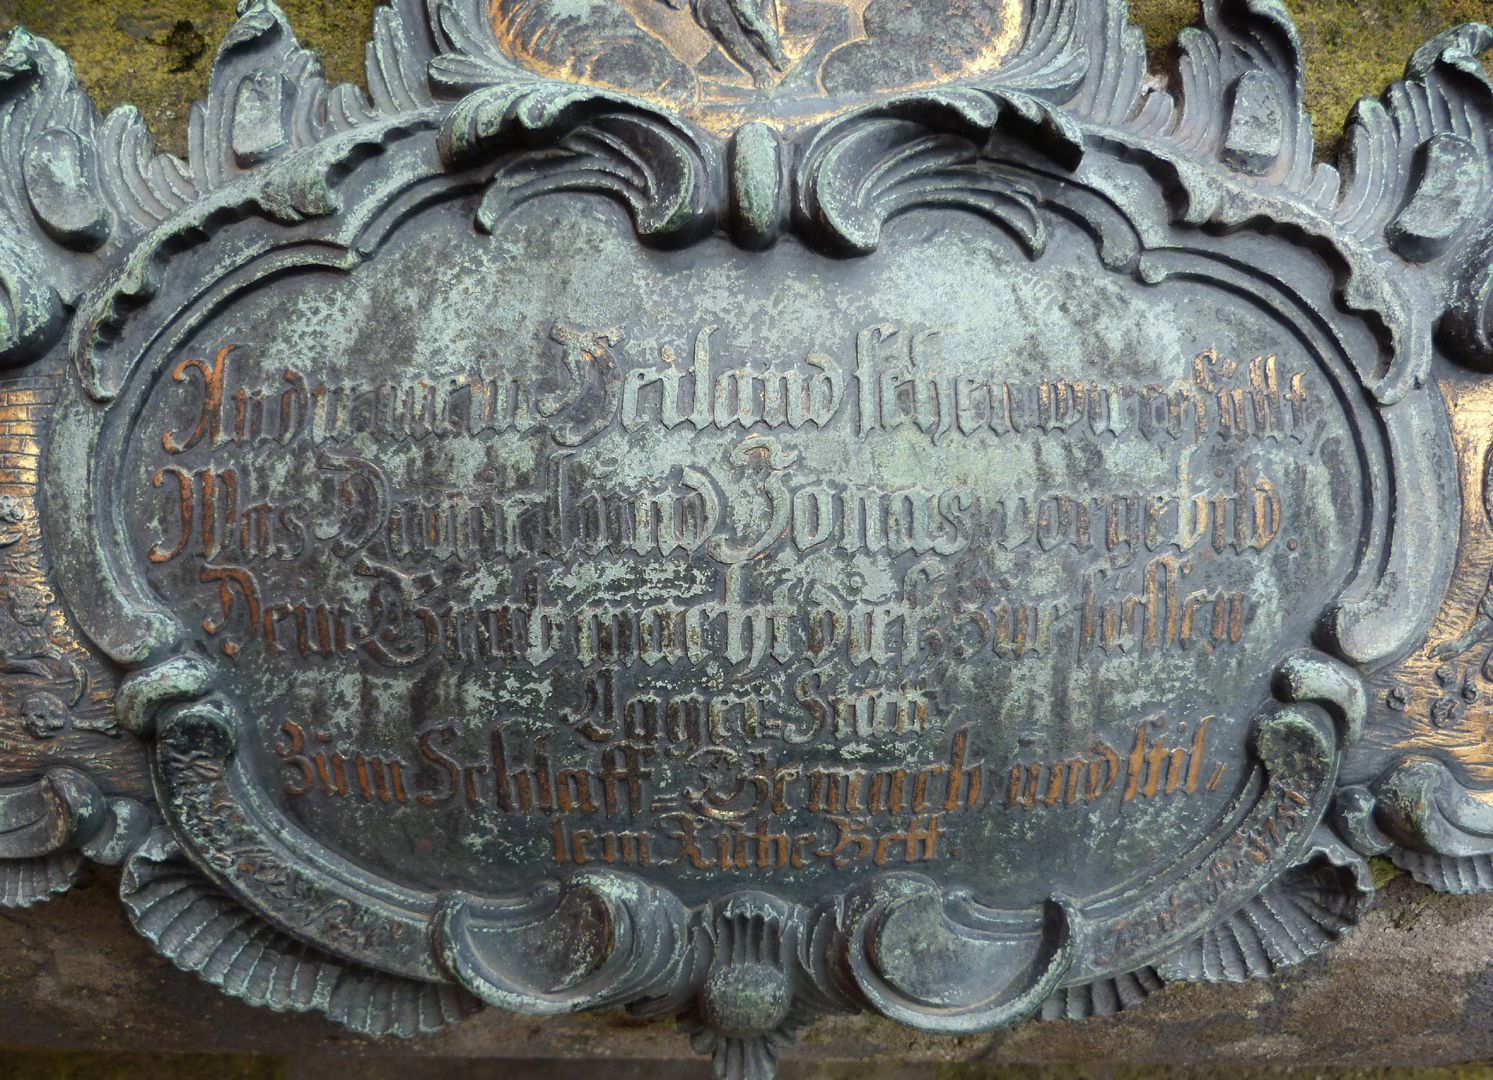 Tomb of Daniel Weidner and his spouse Maria Regina Leutner East cartouche, center